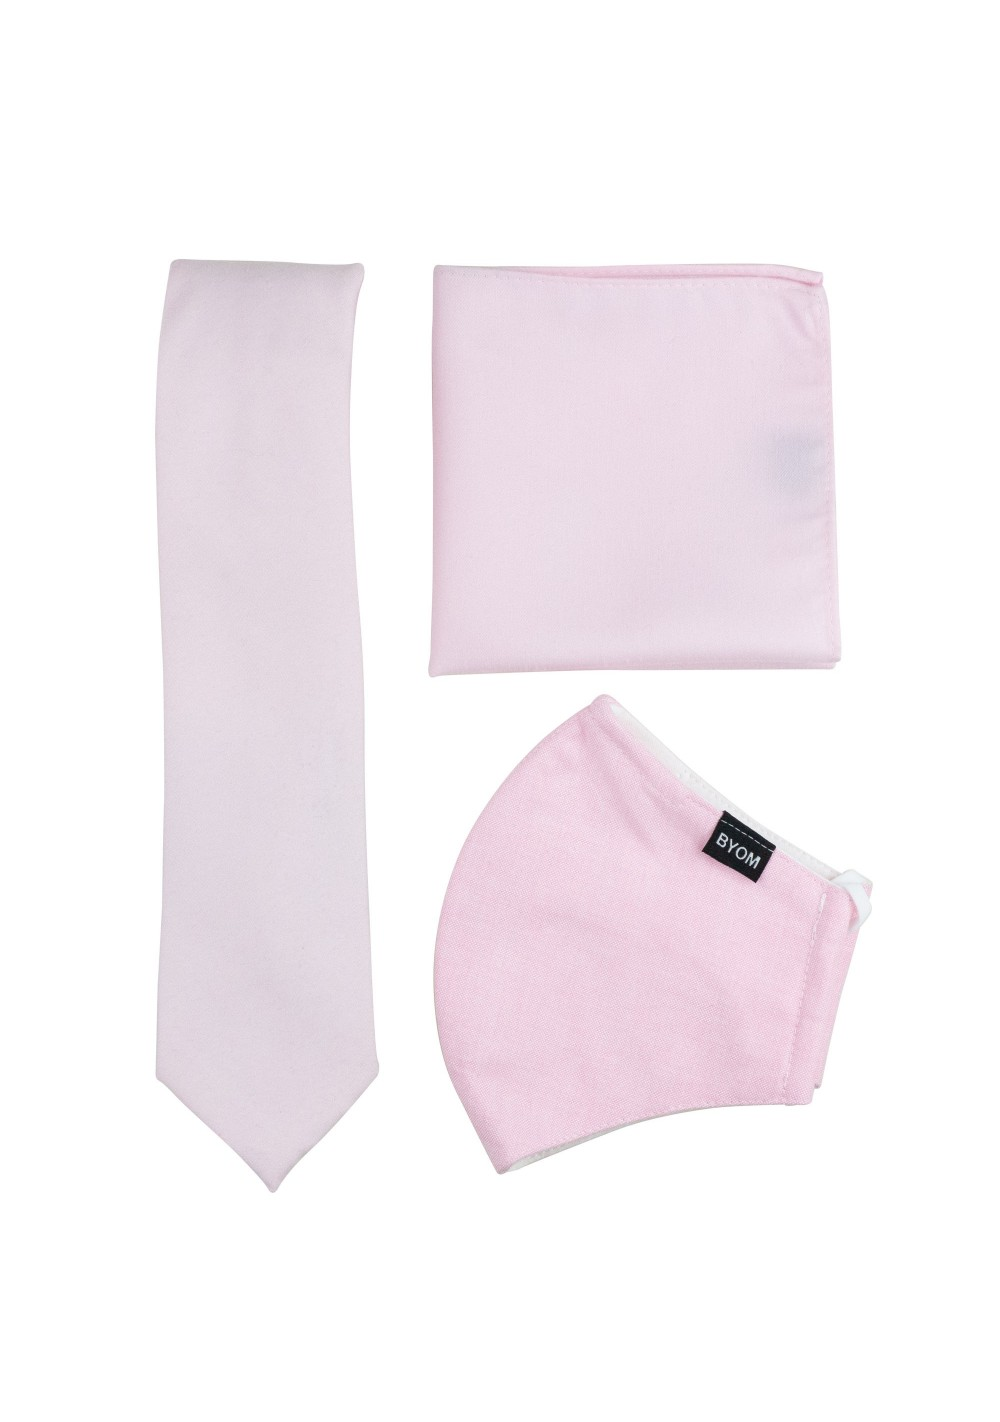 Soft Pink Mask and Tie Set